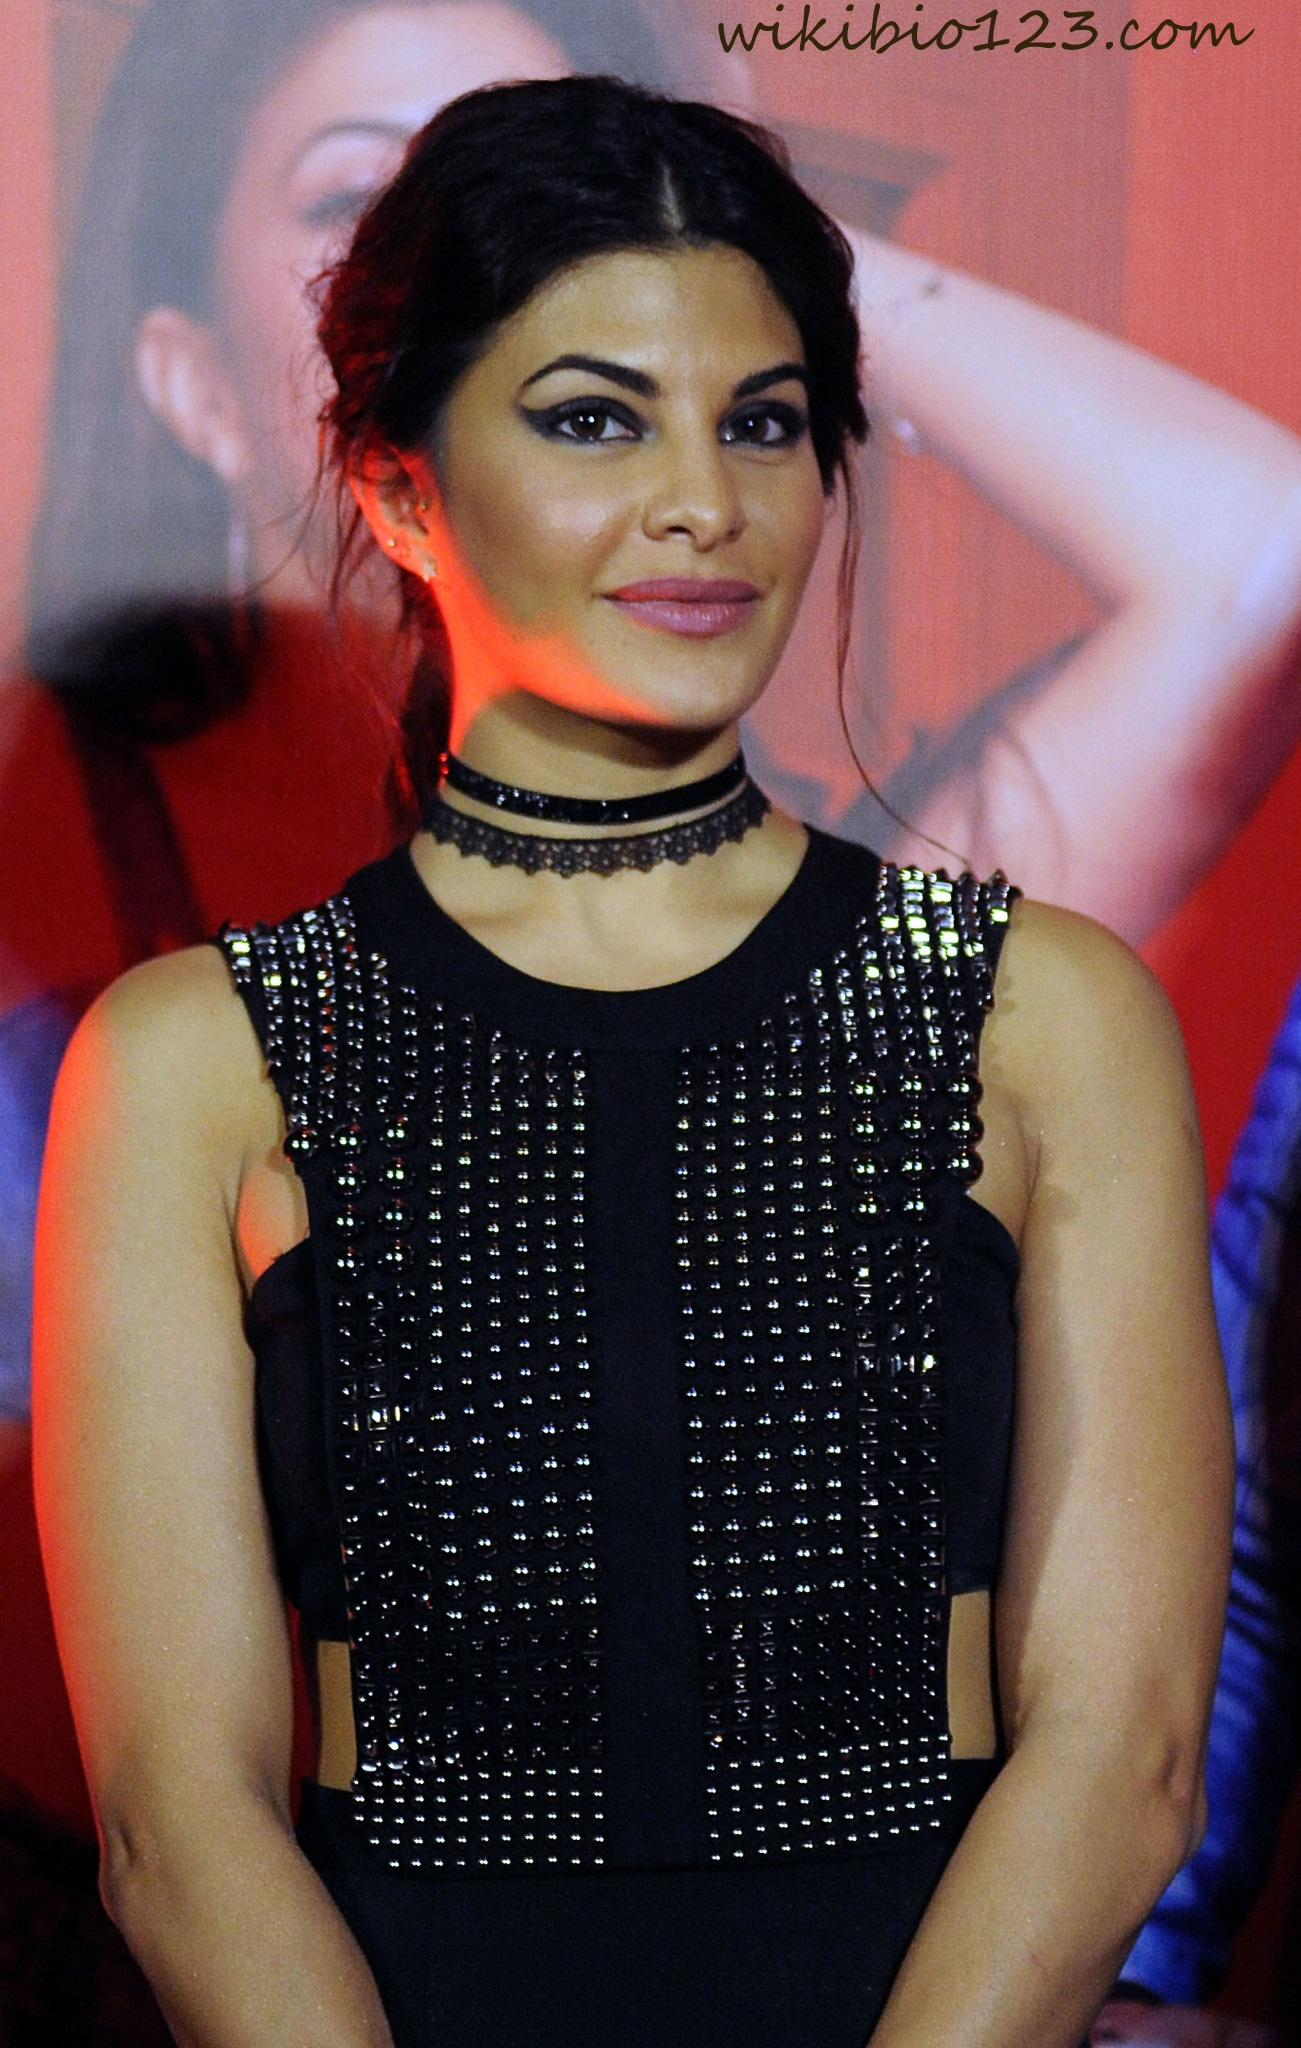 Jacqueline Fernandez wiki Bio Age Figure size Height HD Images